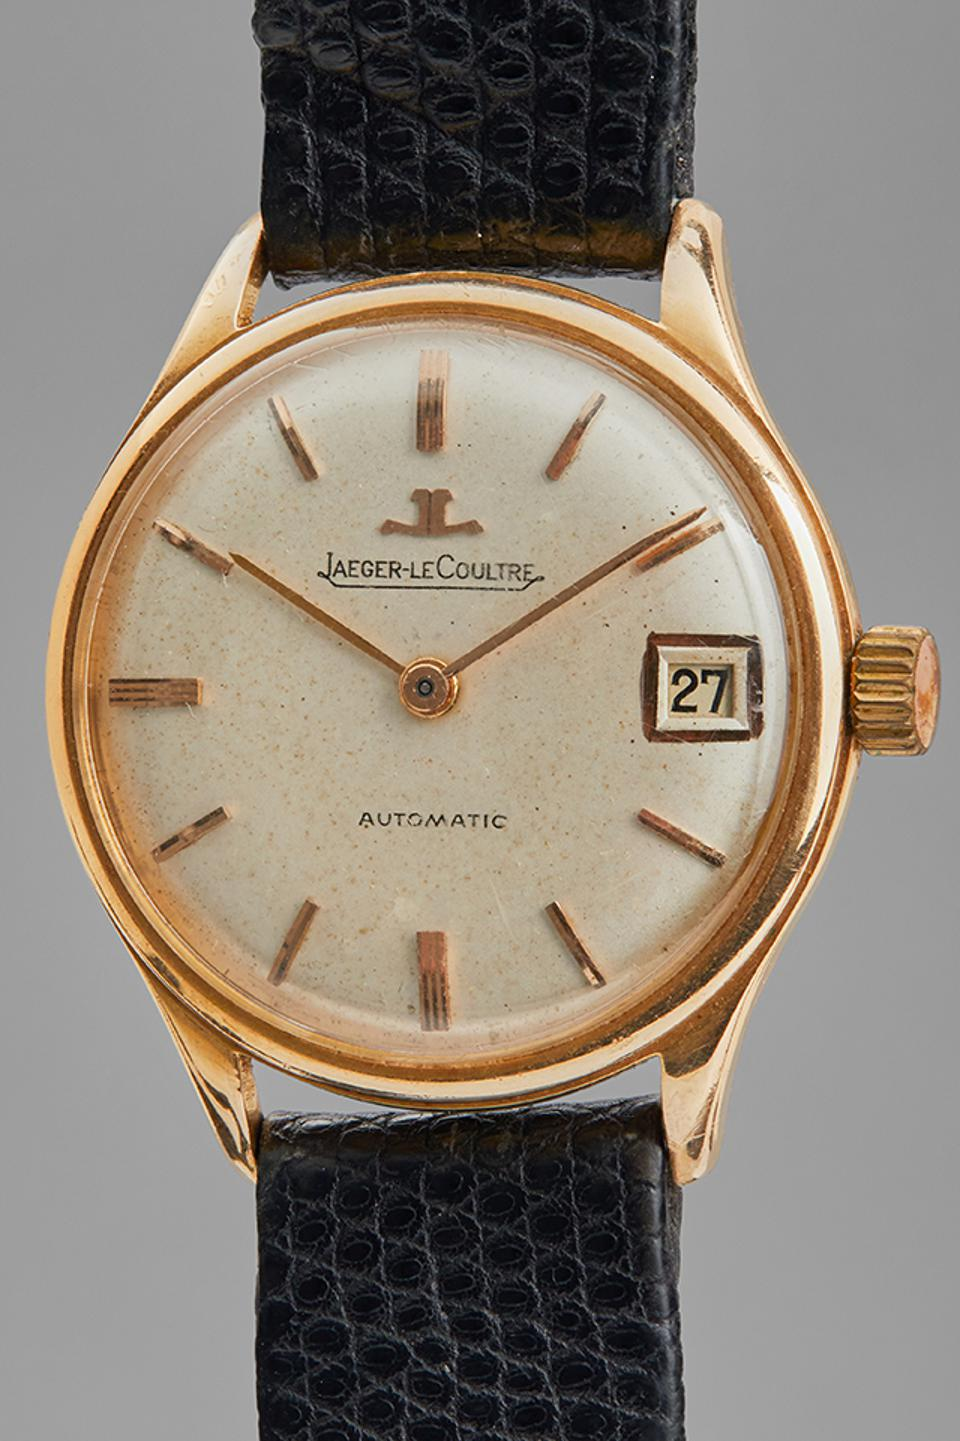 The Jaeger-LeCoultre donated by Bono for the Phillips auction benefiting One Drop Foundation.